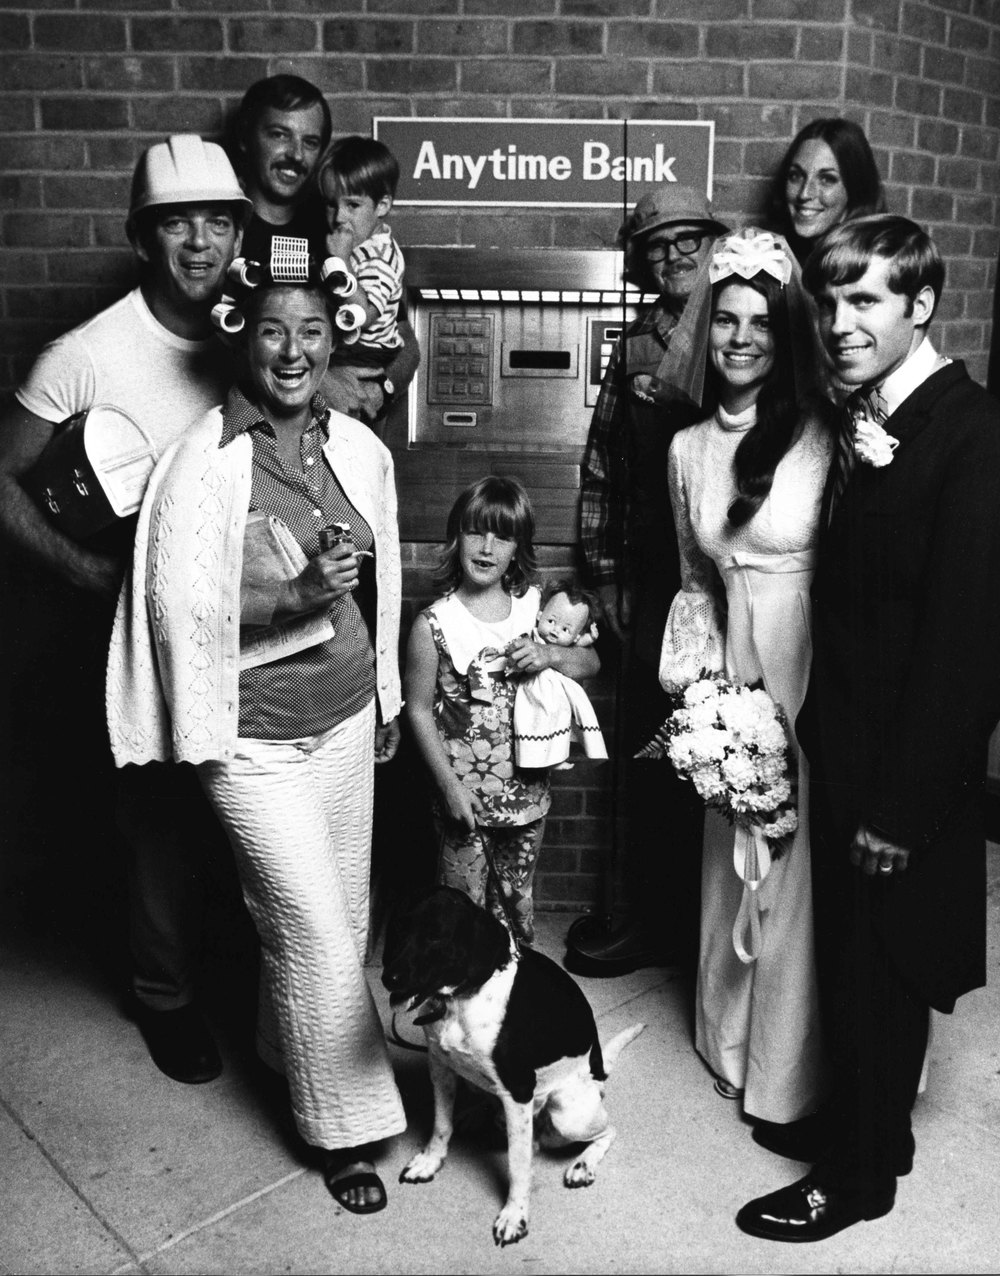 16_13_Family portrait in front of Anytime Bank #3_Dan Wynn Archive.jpeg